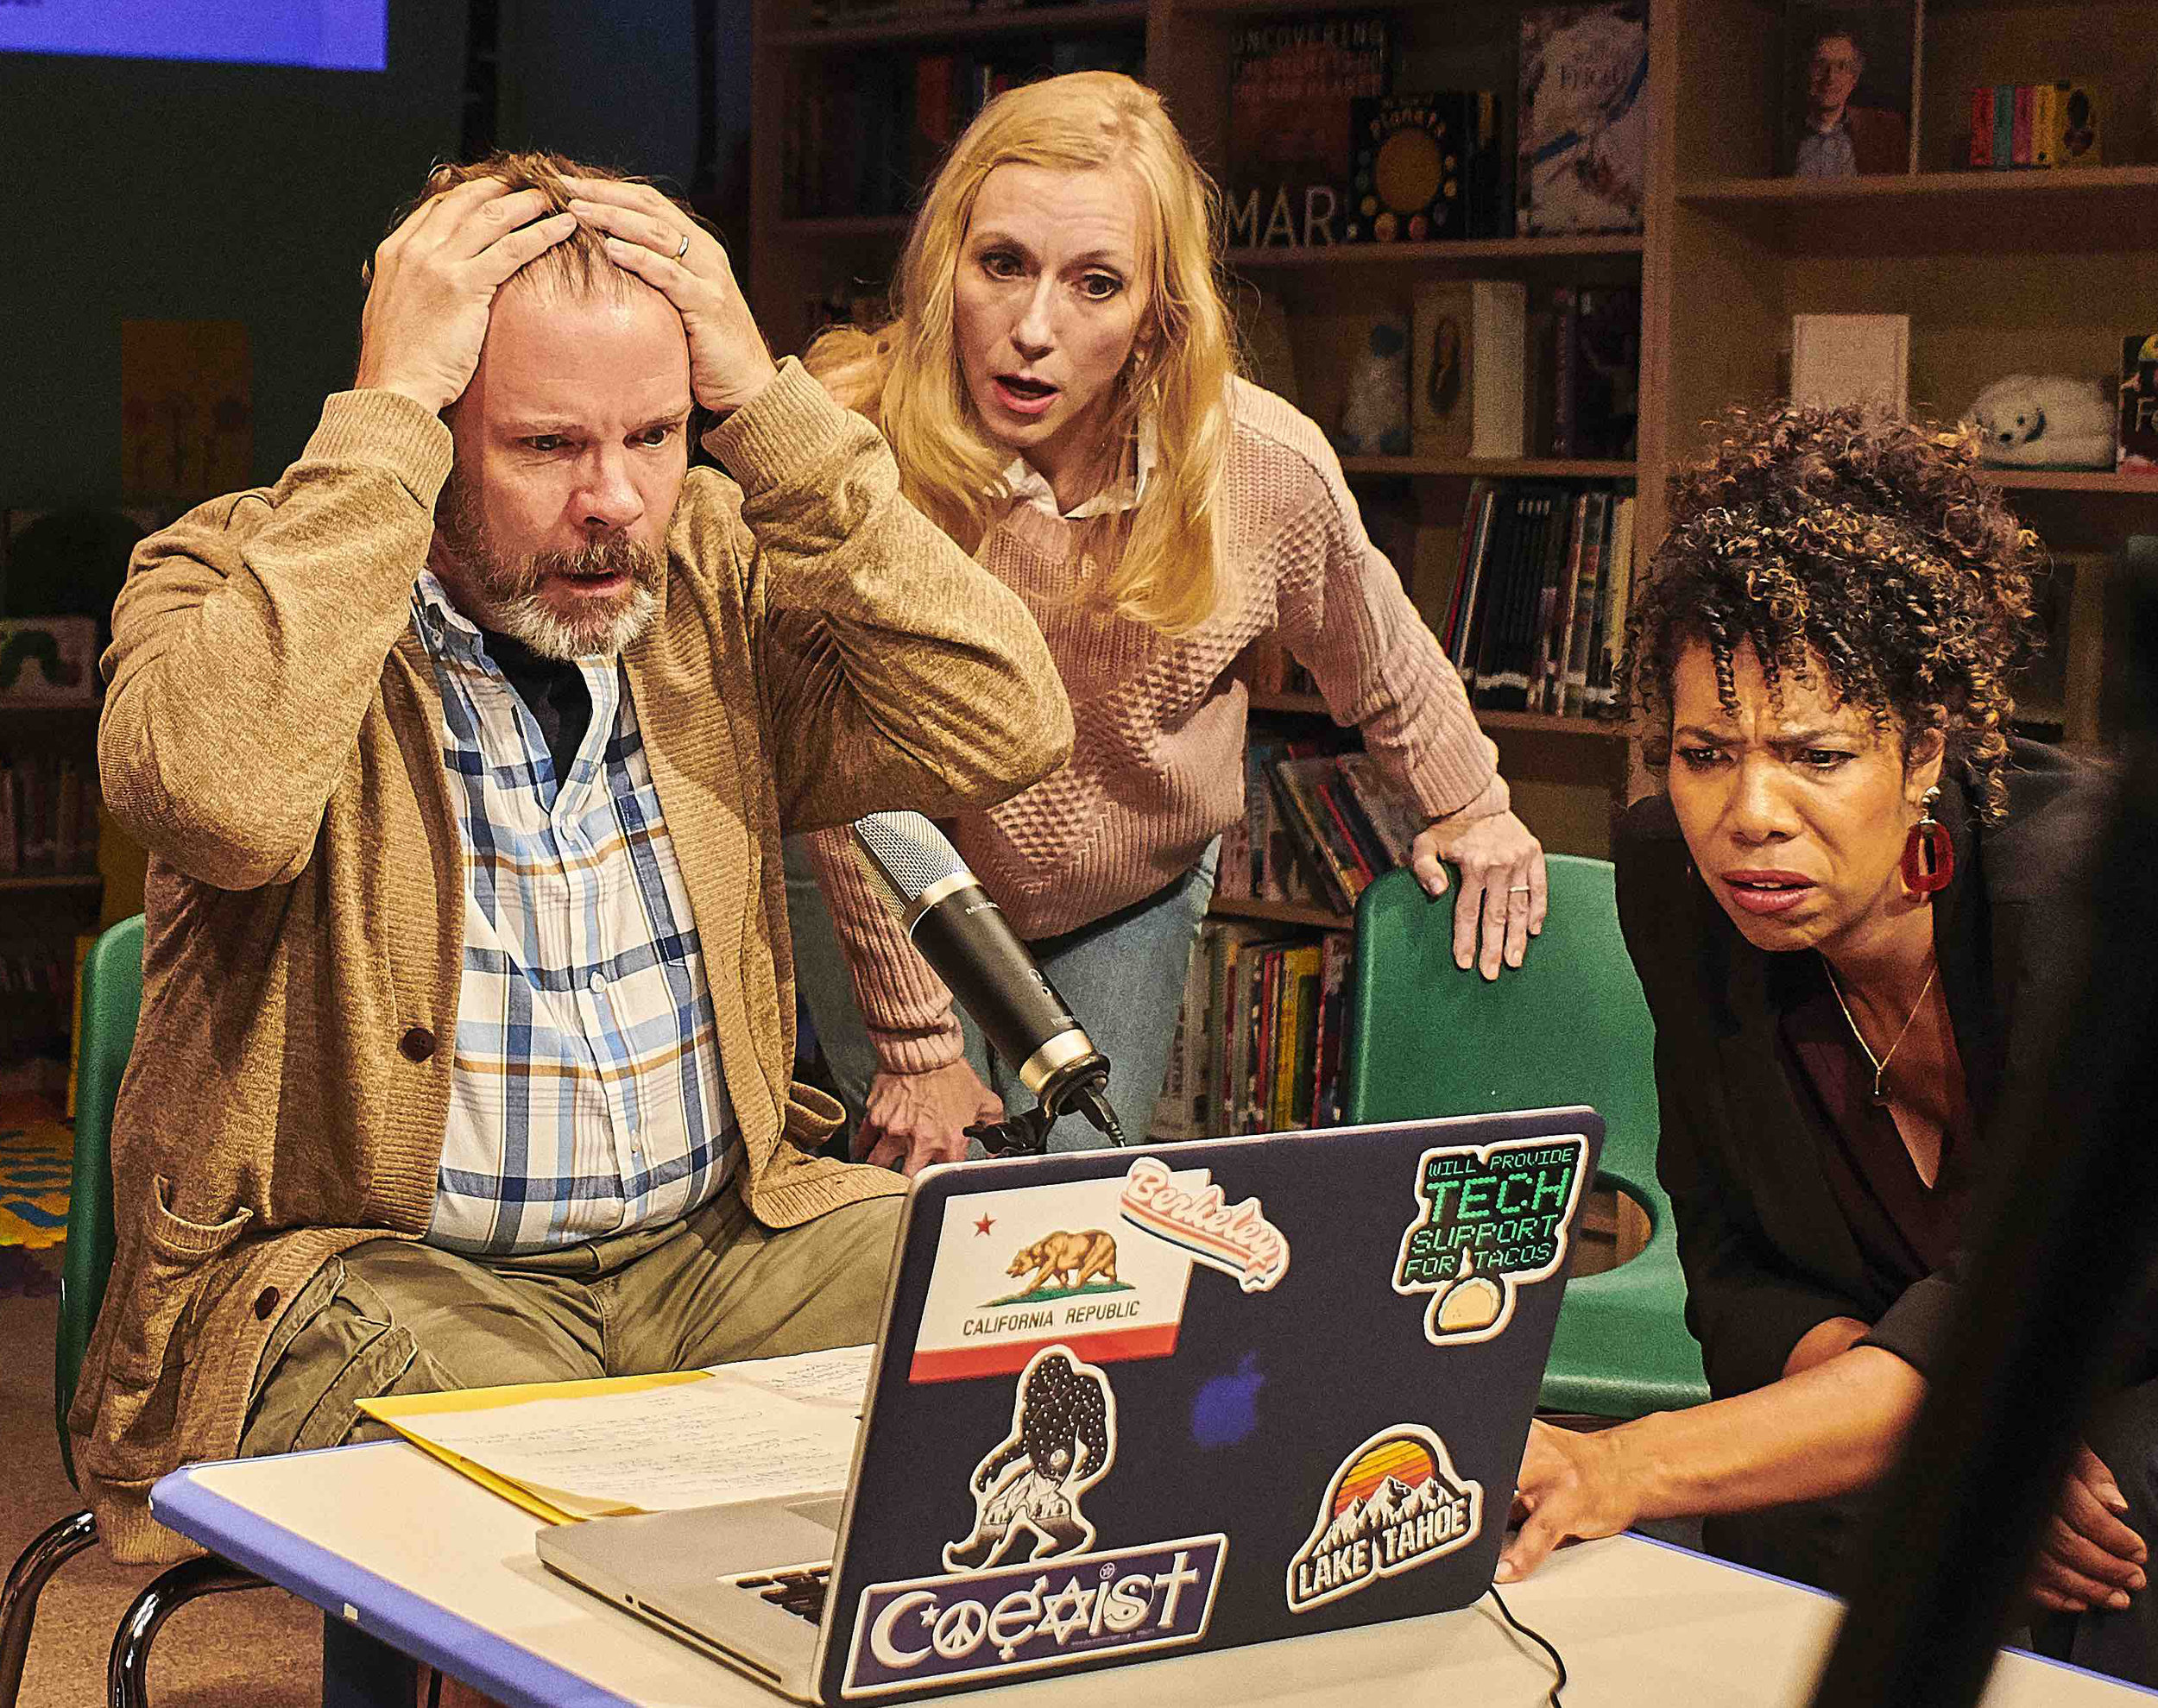 Don, Suzanne and Carina are aghast as the online conversation turns acrimonious.